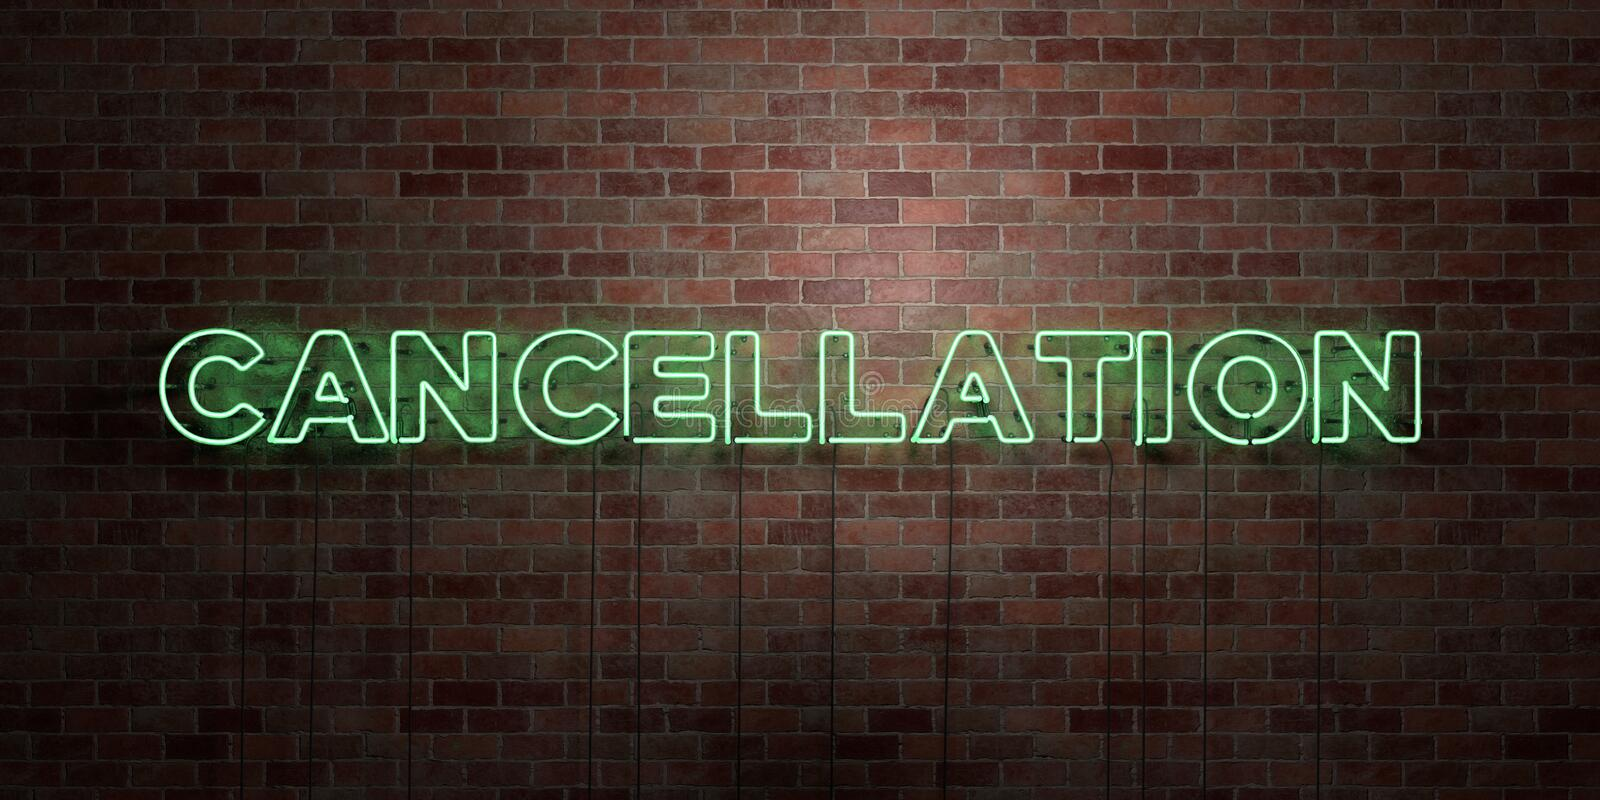 CANCELLATION - fluorescent Neon tube Sign on brickwork - Front view - 3D rendered royalty free stock picture. Can be used for online banner ads and direct vector illustration